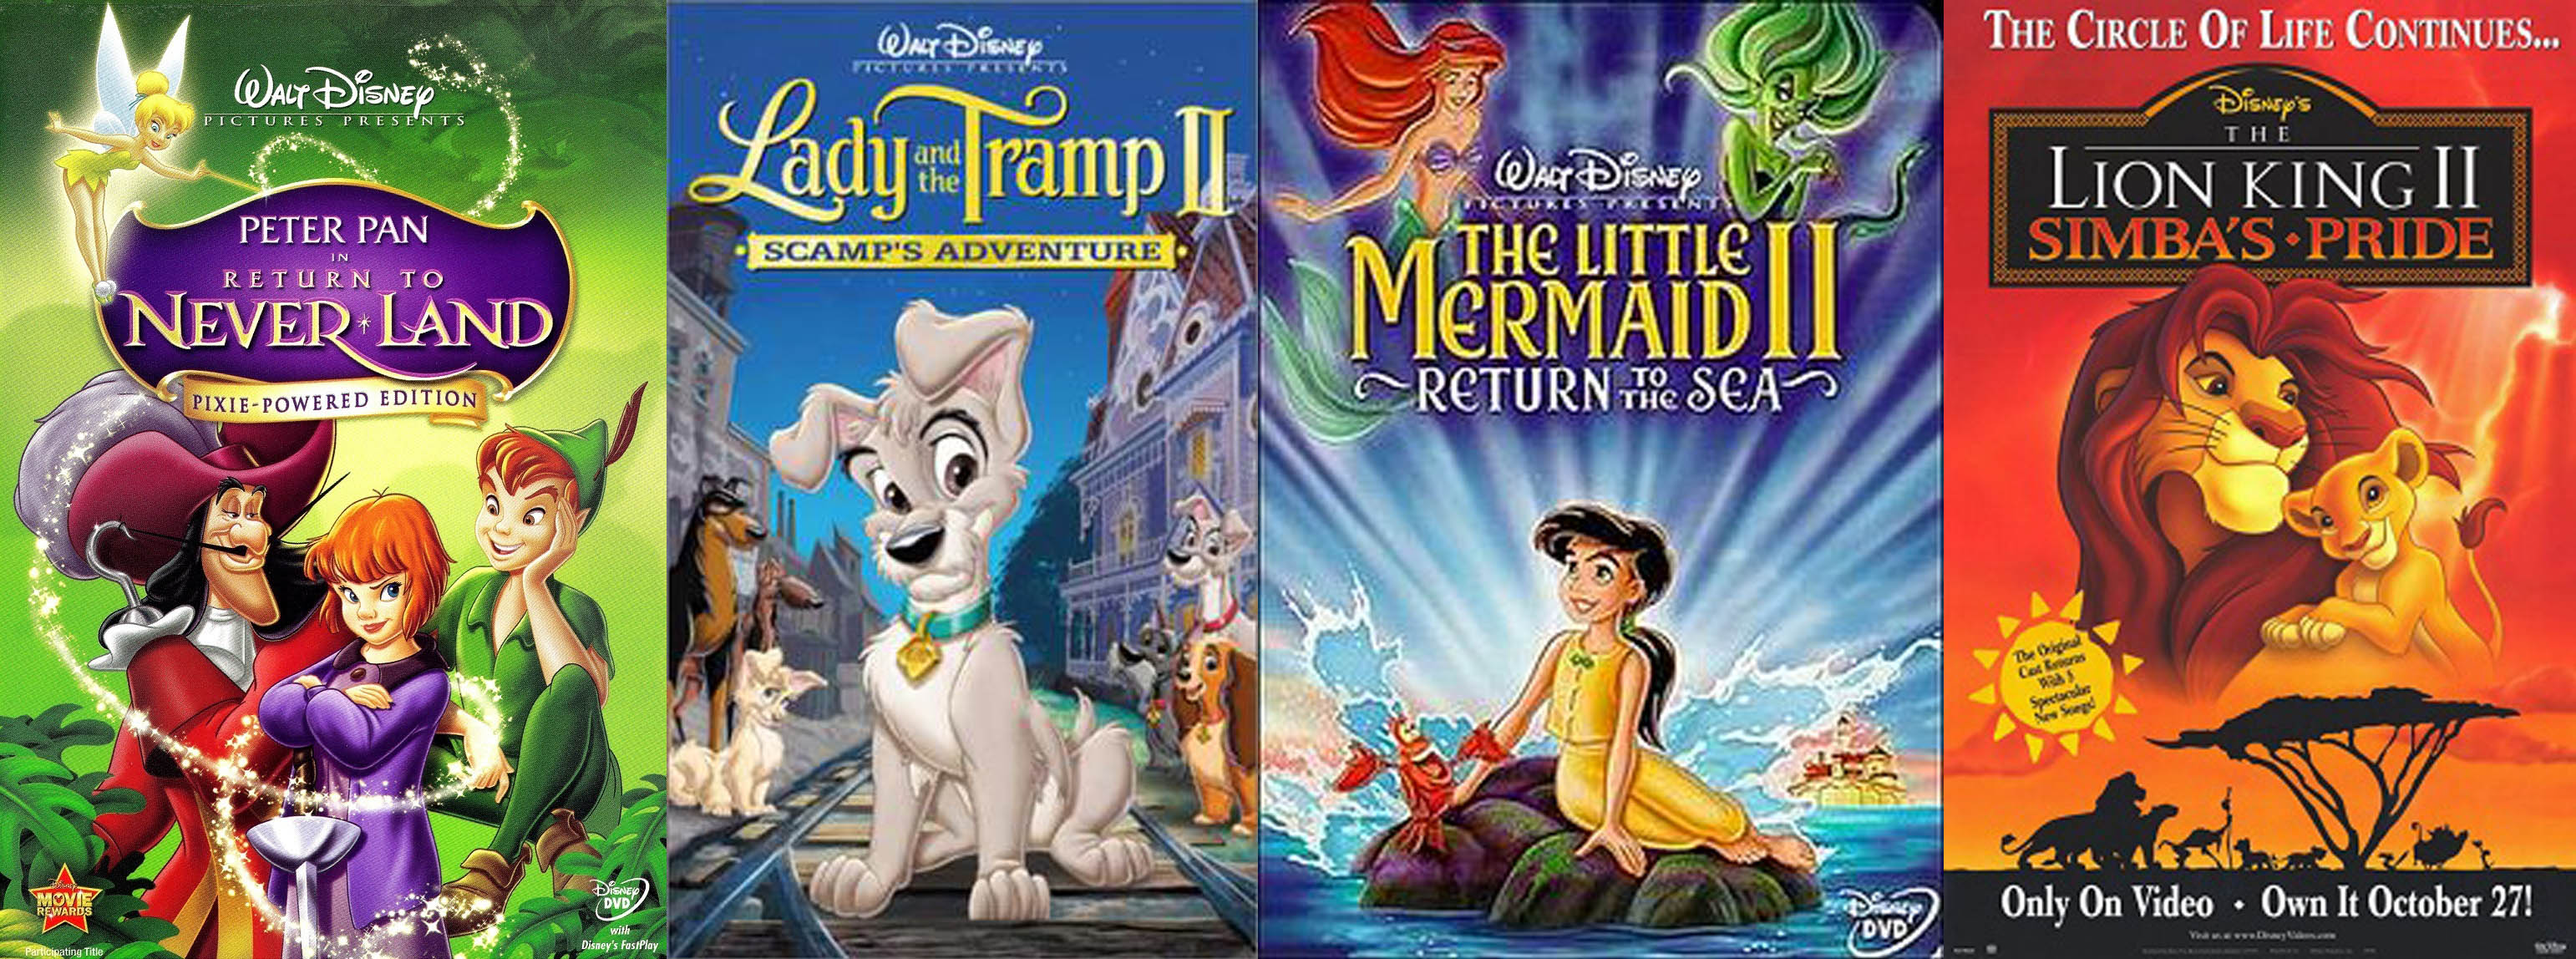 disney direct to video sequels